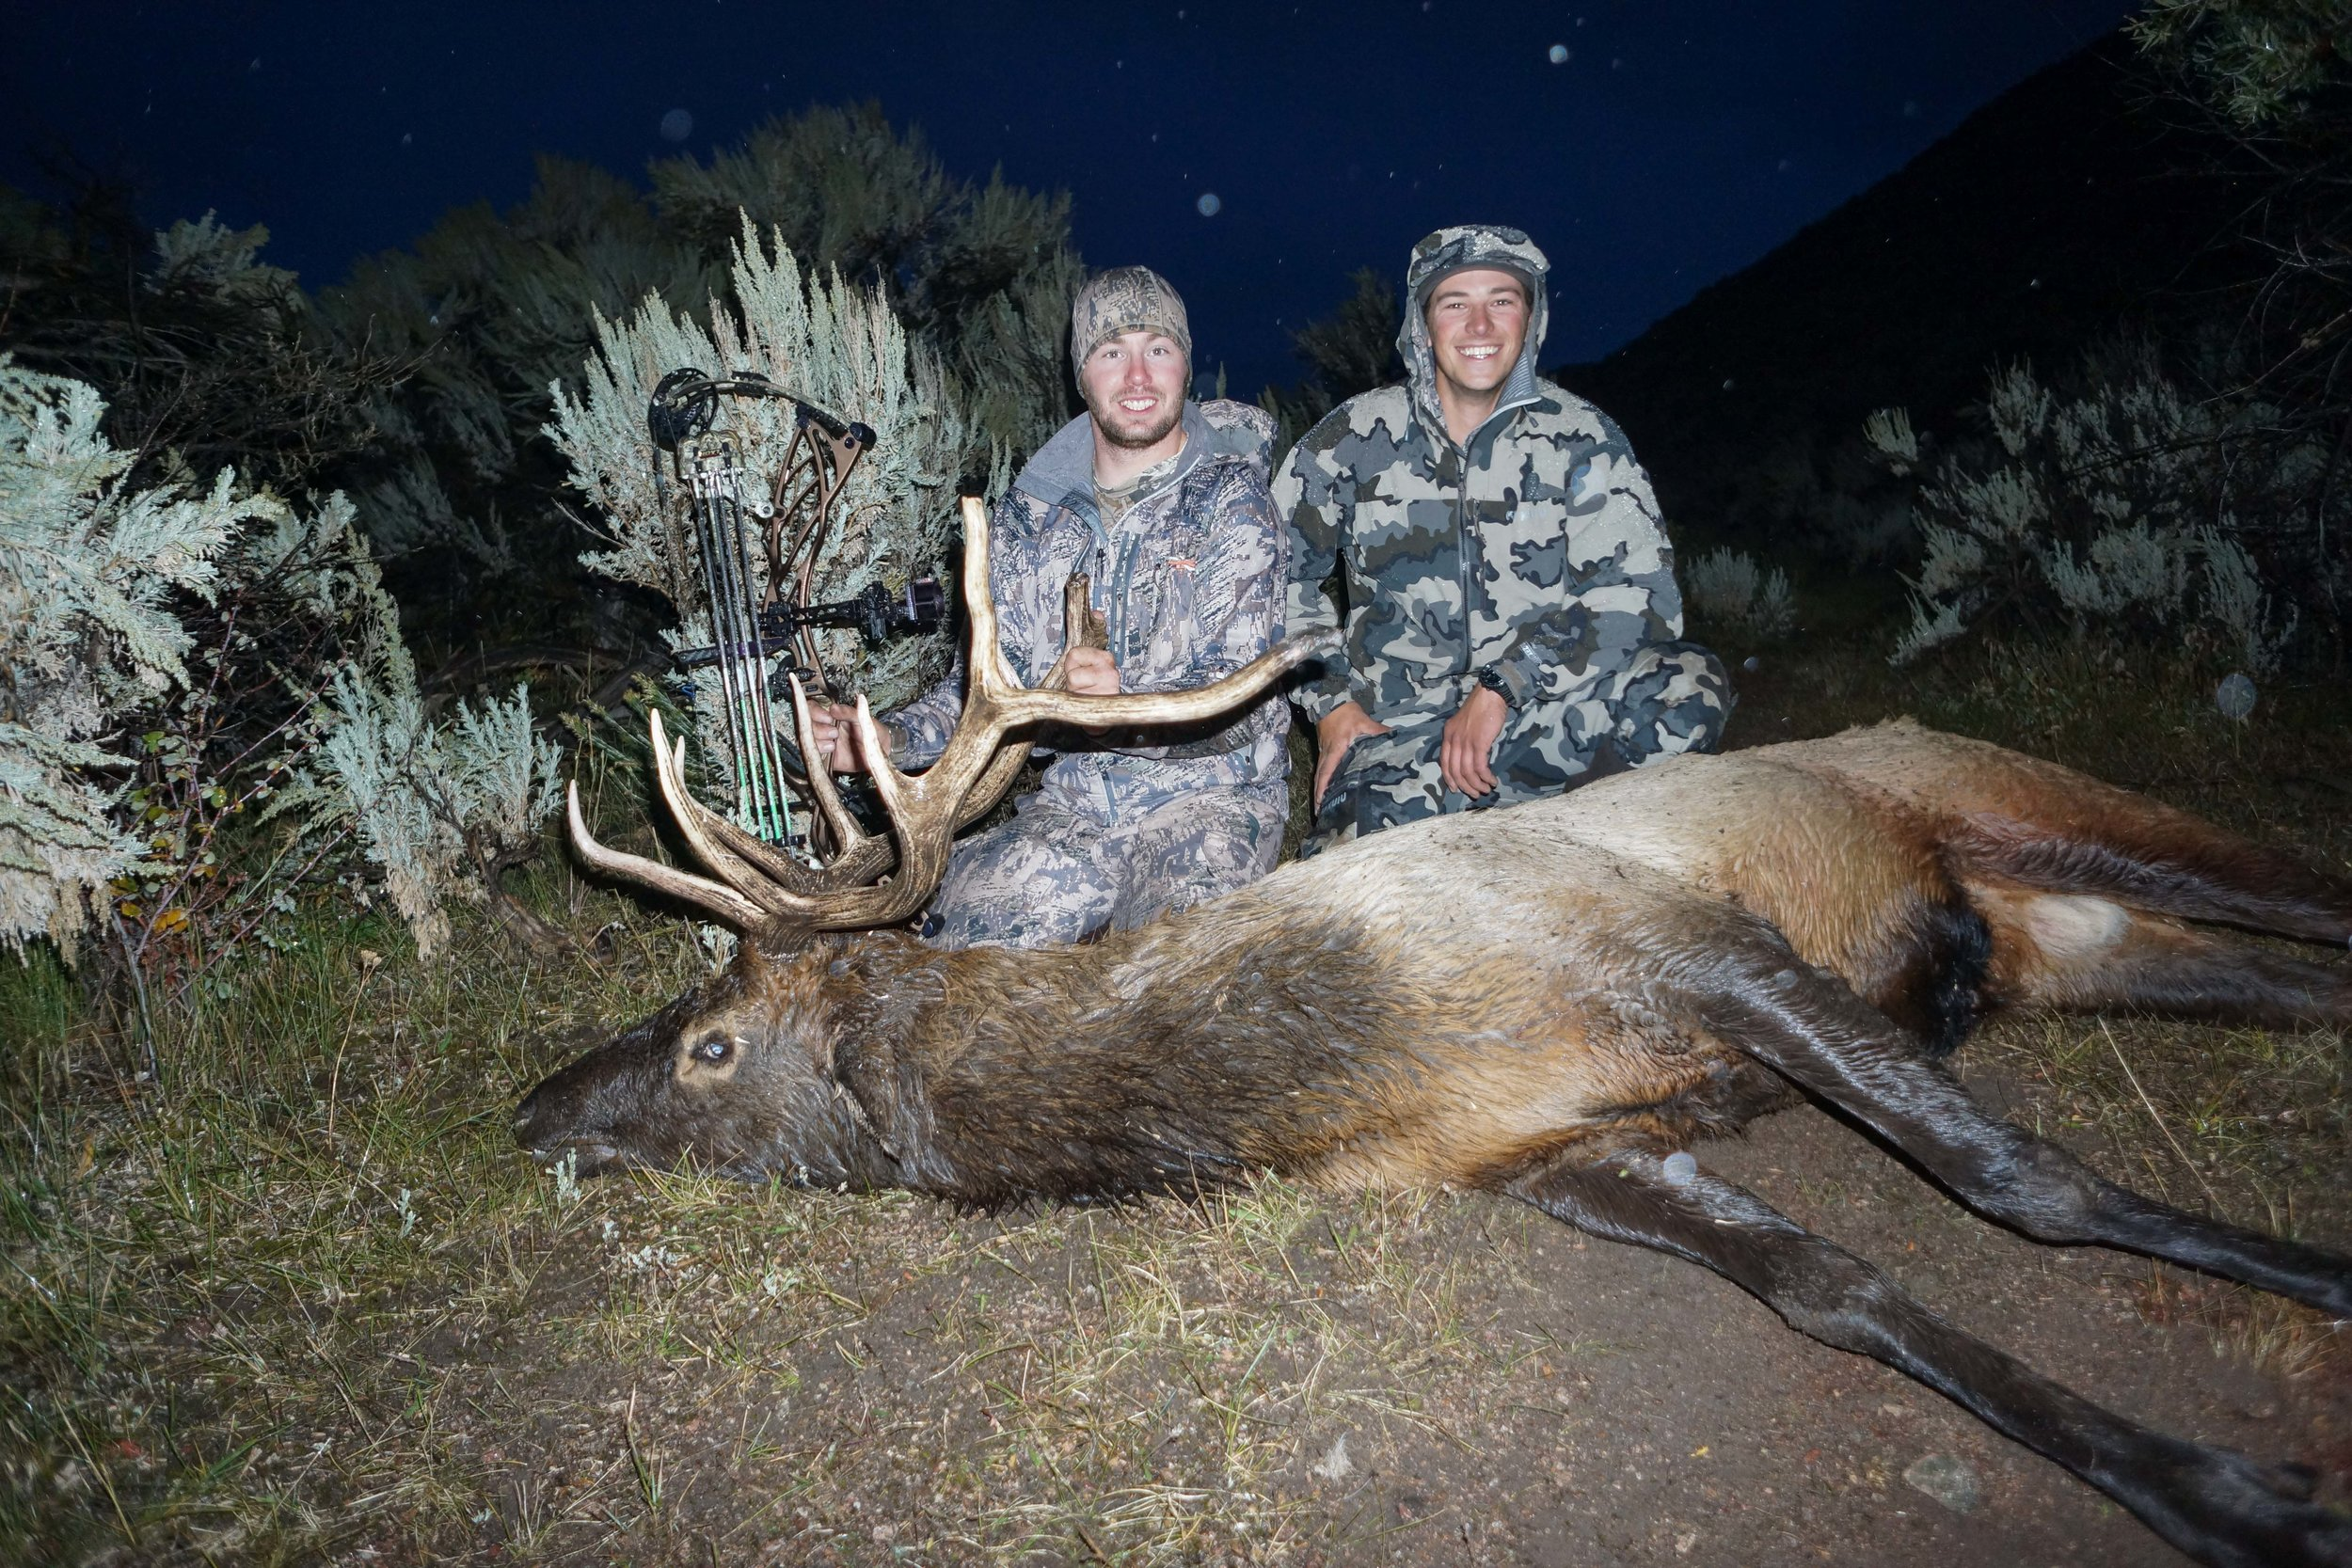 Hunting Elk with a bow in Montana